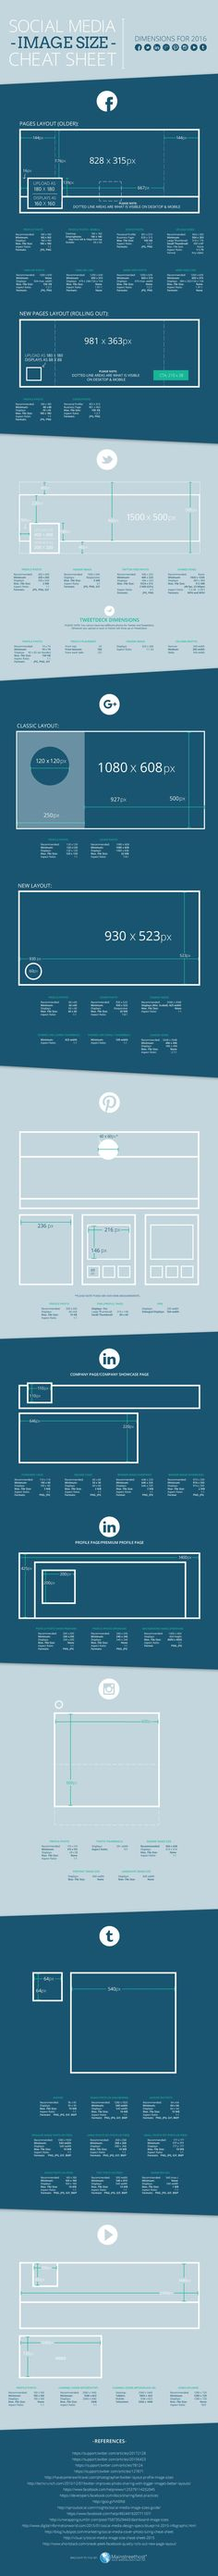 One of the most up to date collections of Social Media Image Dimensions for 2016: http://www.mainstreethost.com/blog/social-media-image-size-cheat-sheet/